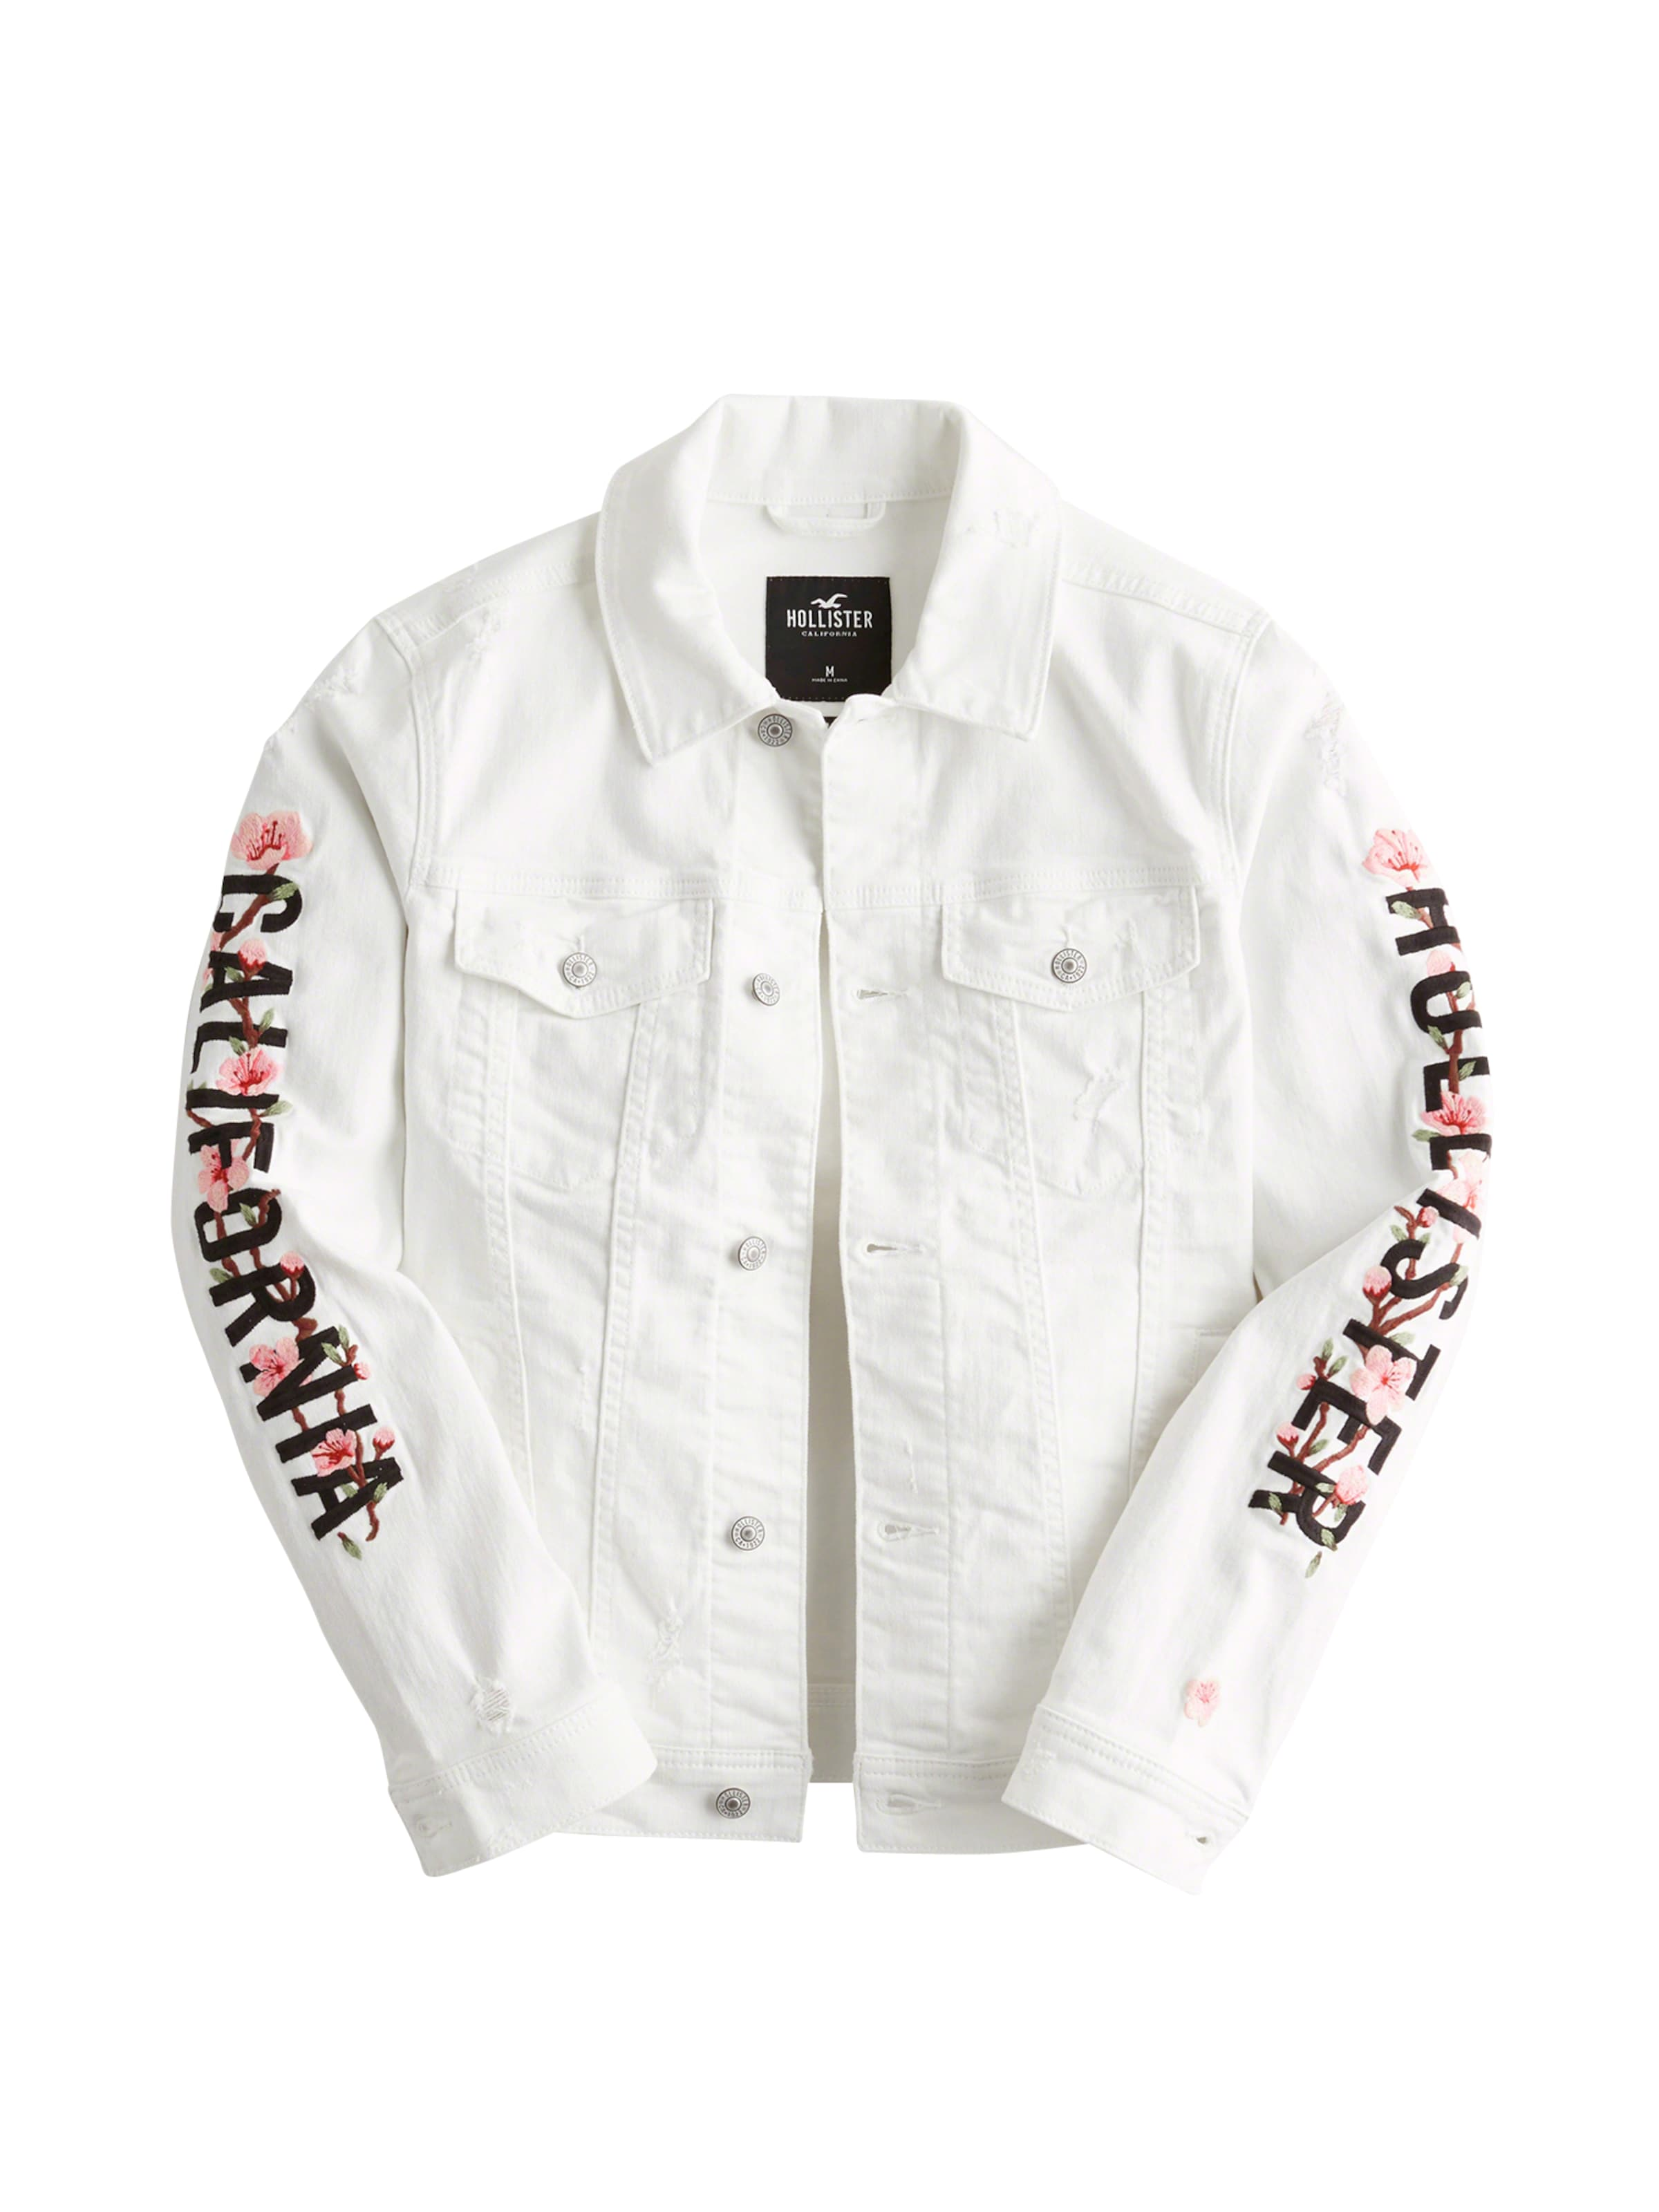 Denim saison En Hollister Veste Trucker' Blanc 'embroidered Mi Fashion nk0OwP